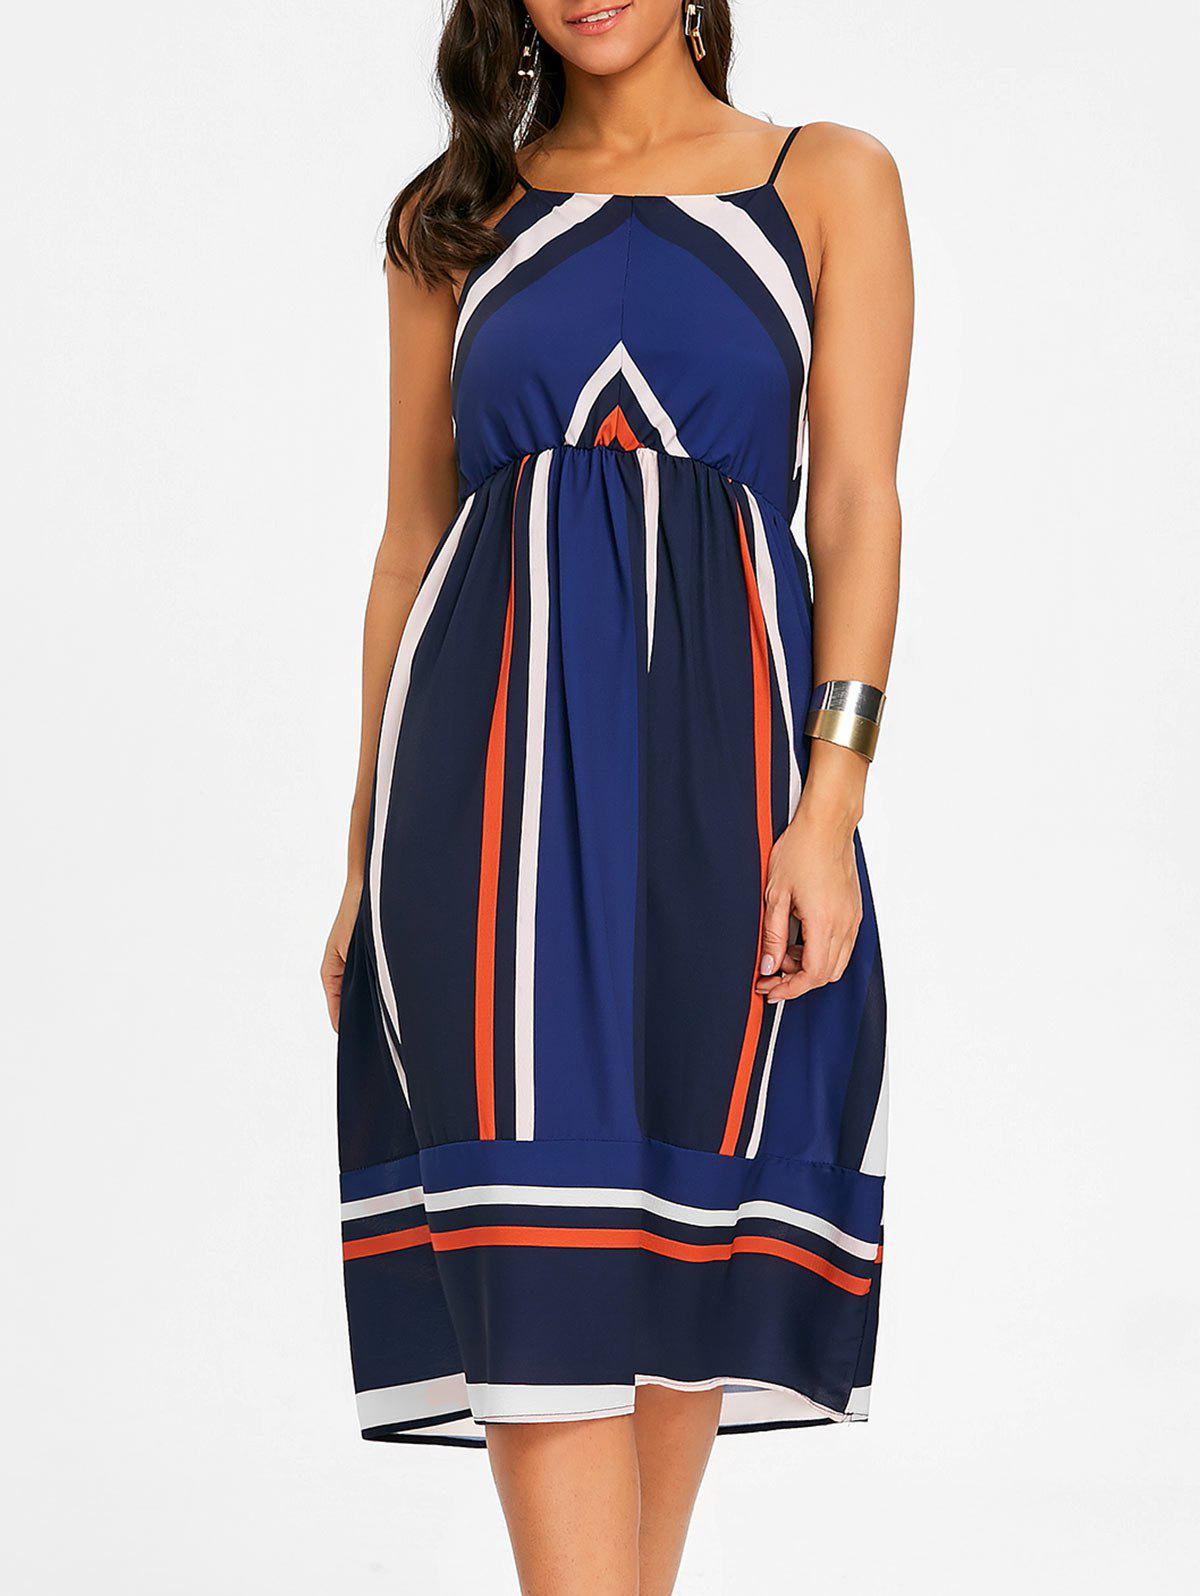 Striped Spaghetti Strap Dress - PURPLISH BLUE S